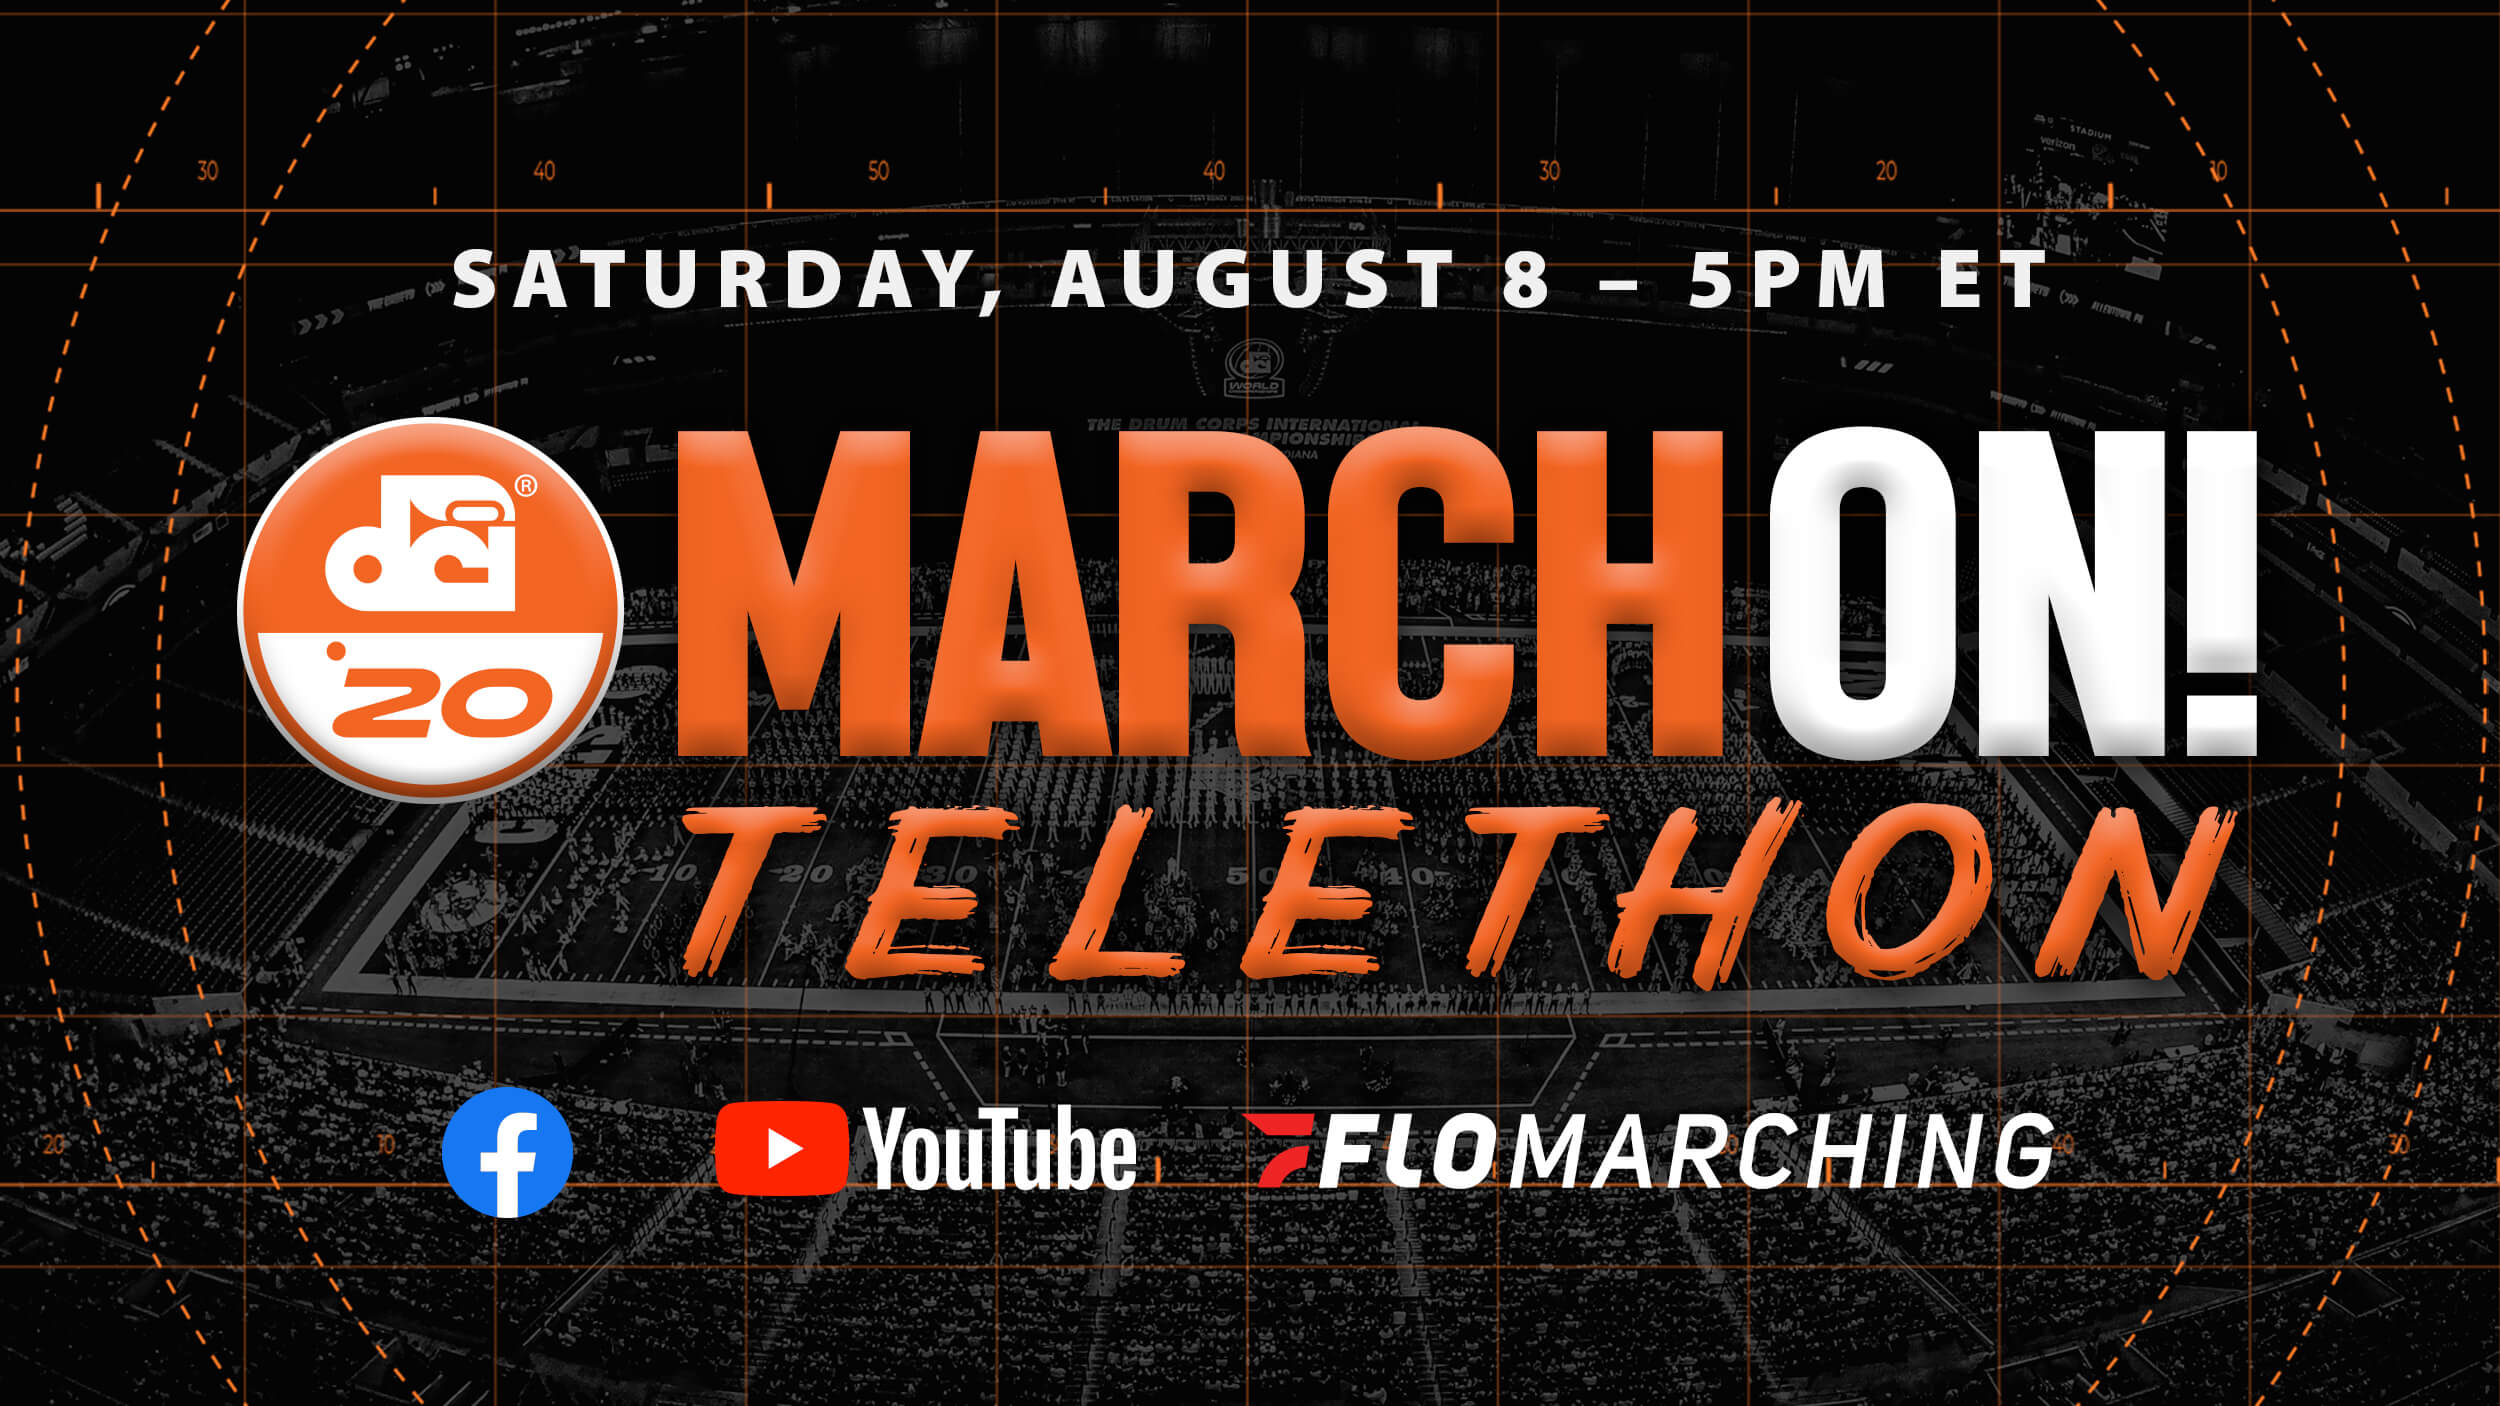 What you'll see on the August 8 MarchOn! Telethon